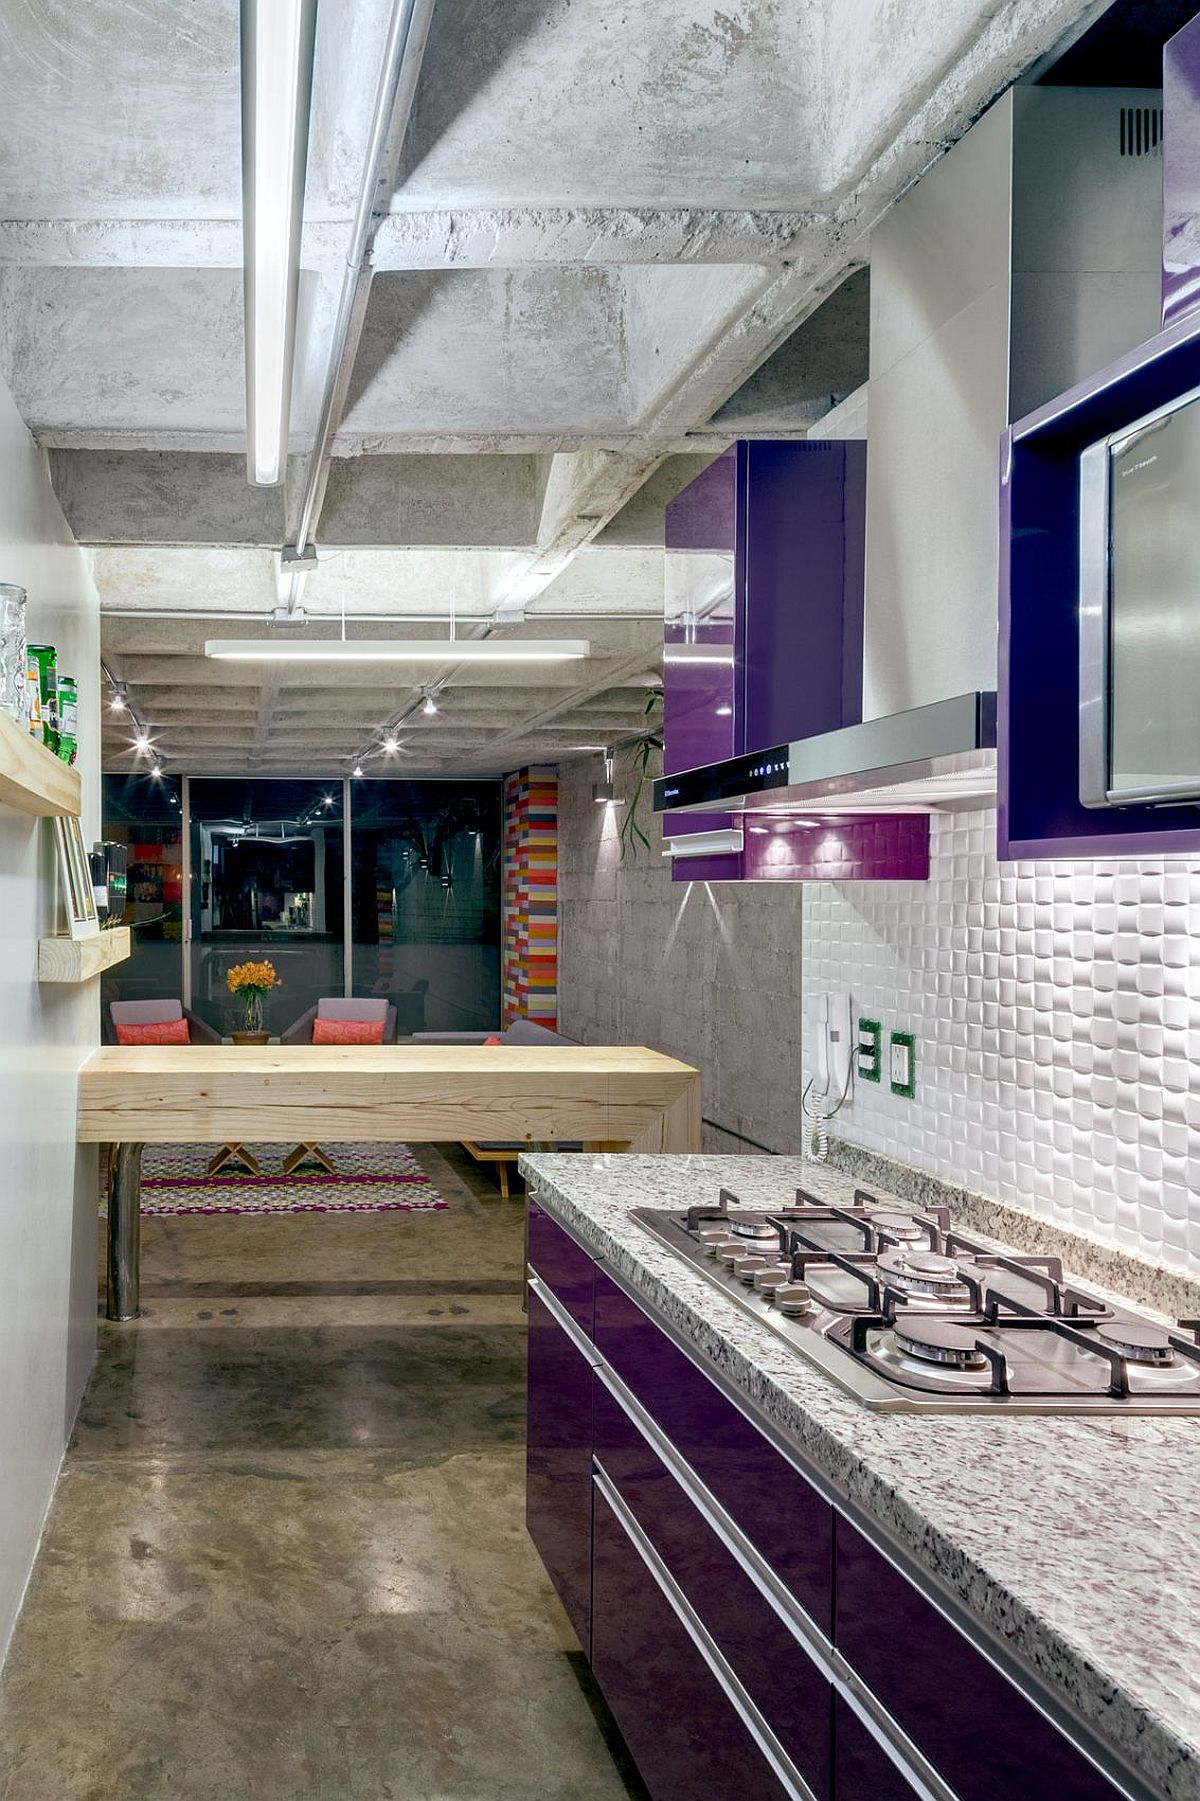 Aubergine-purple polyester cabinets and recycled timber breakfast bench inside the small kitchen